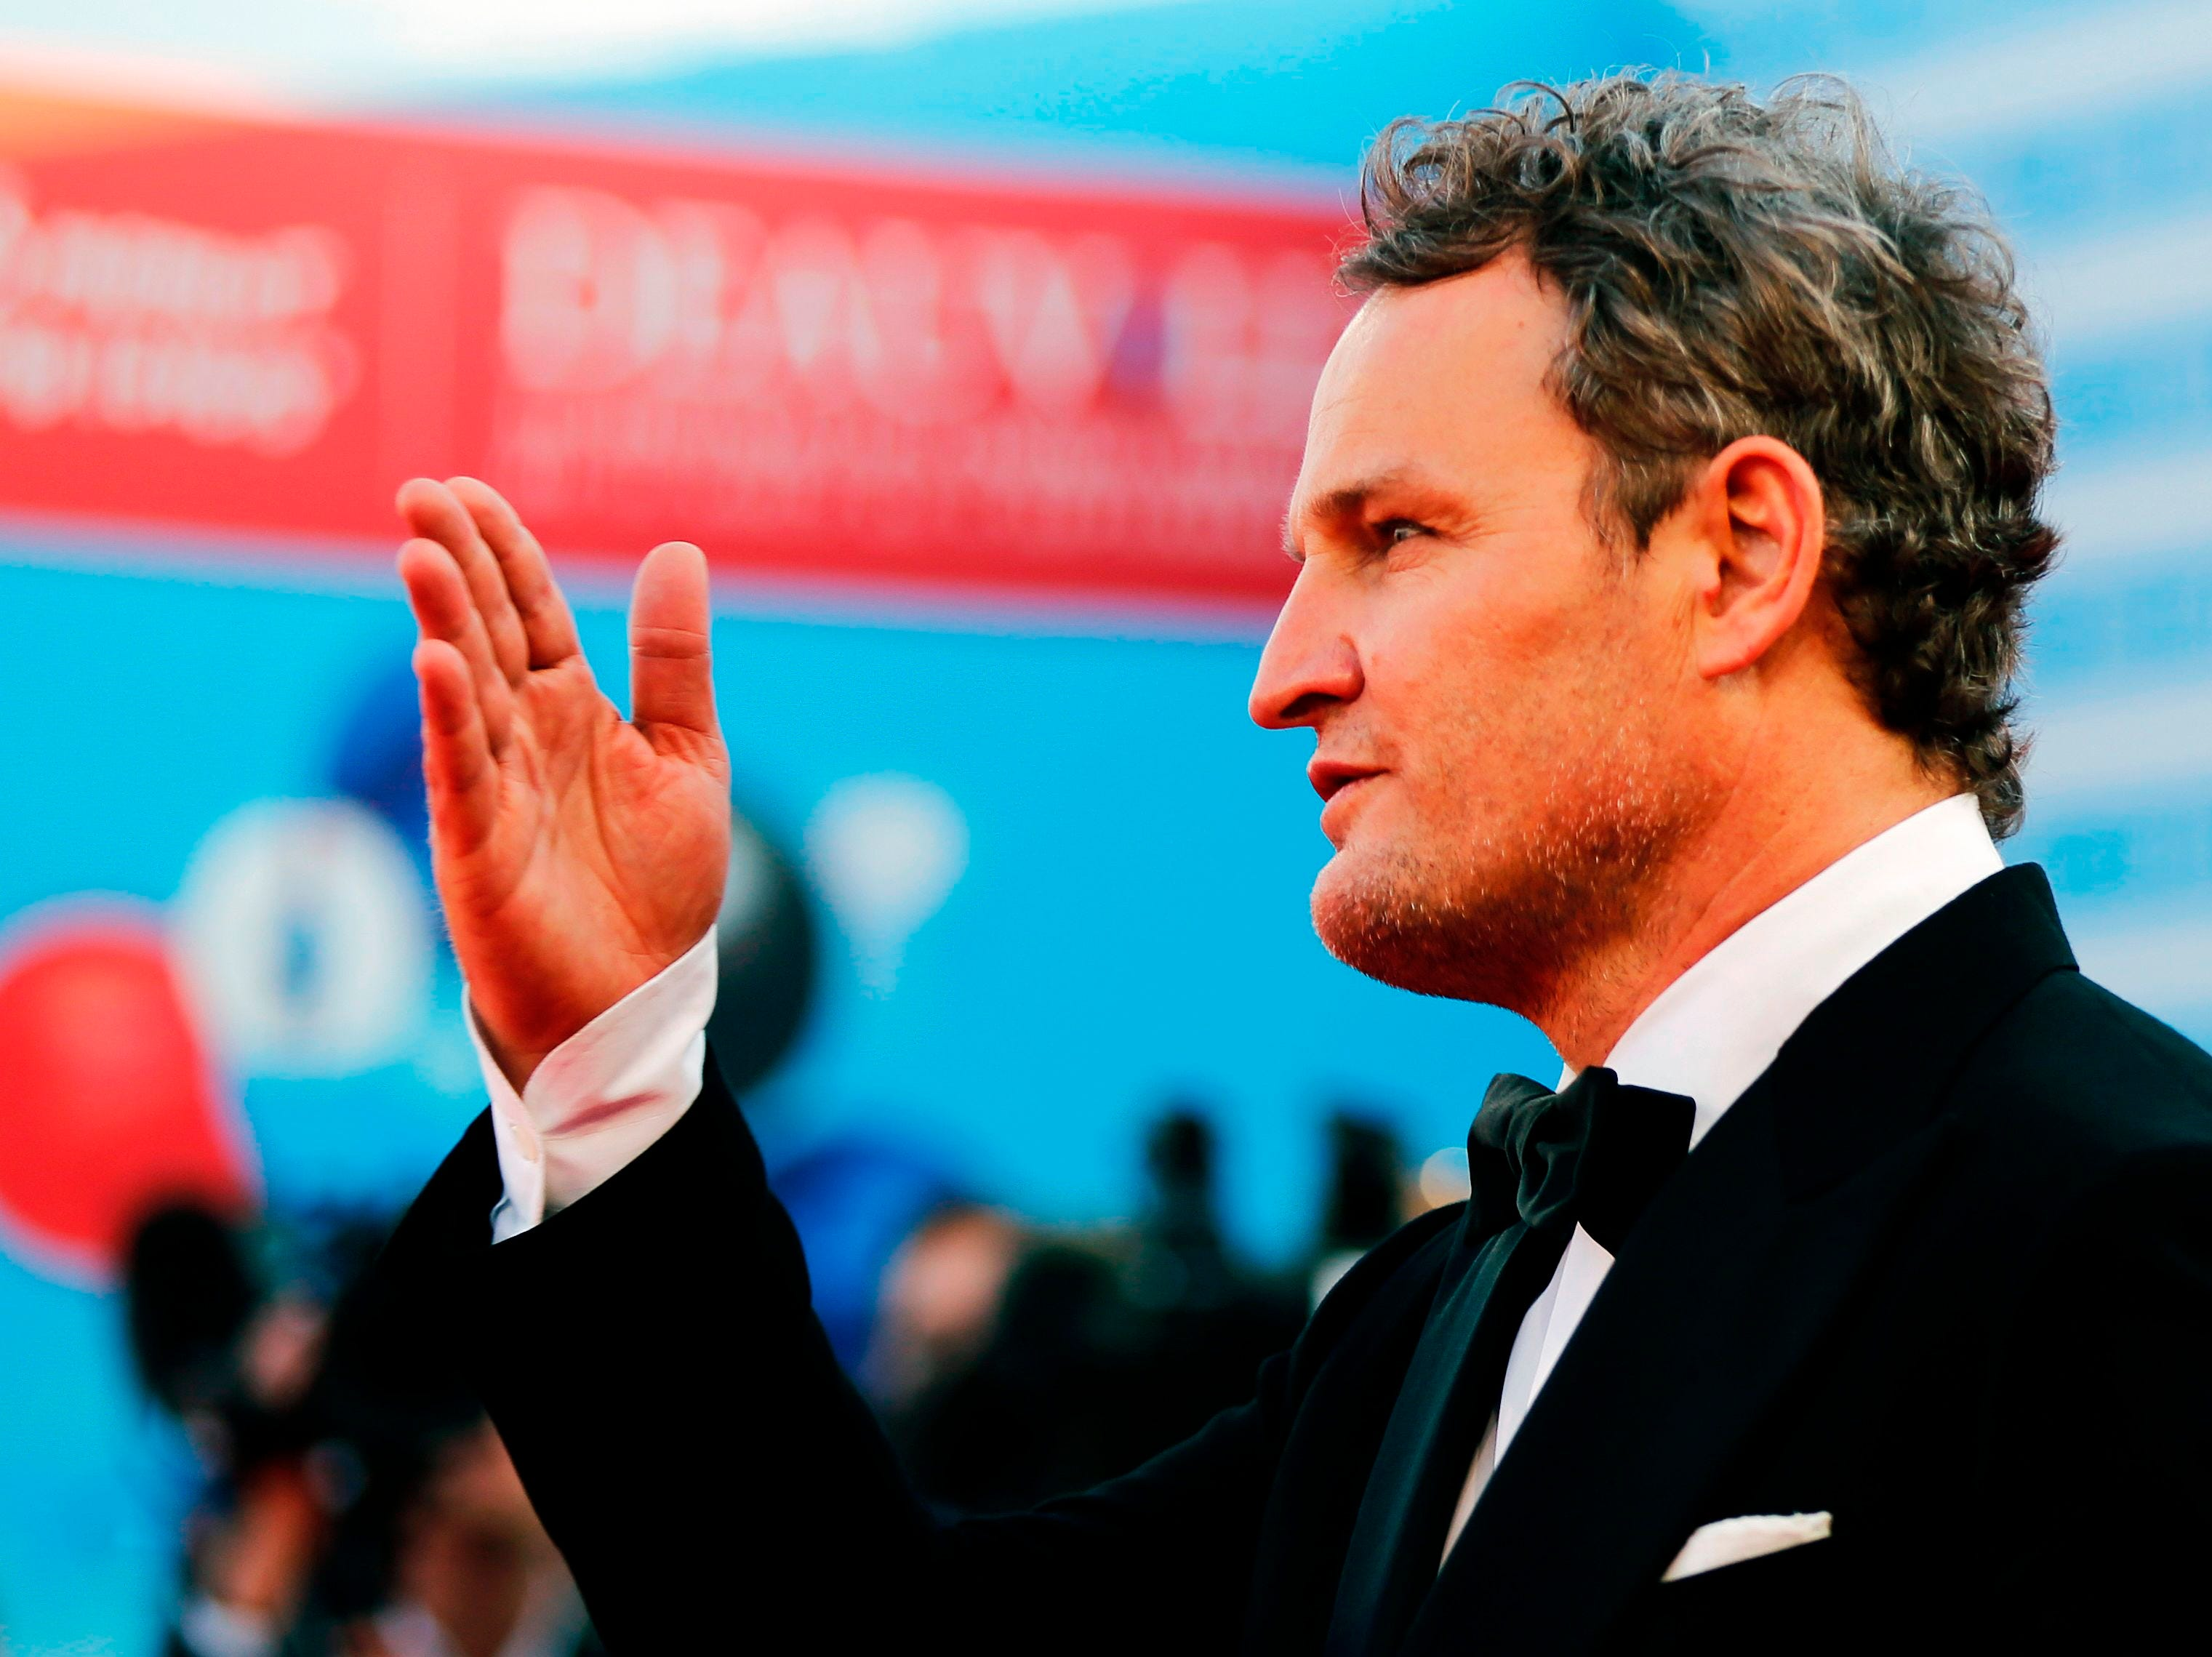 Jason Clarke on the red carpet at the opening ceremony of the 44th Deauville US Film Festival on Aug. 31, 2018.